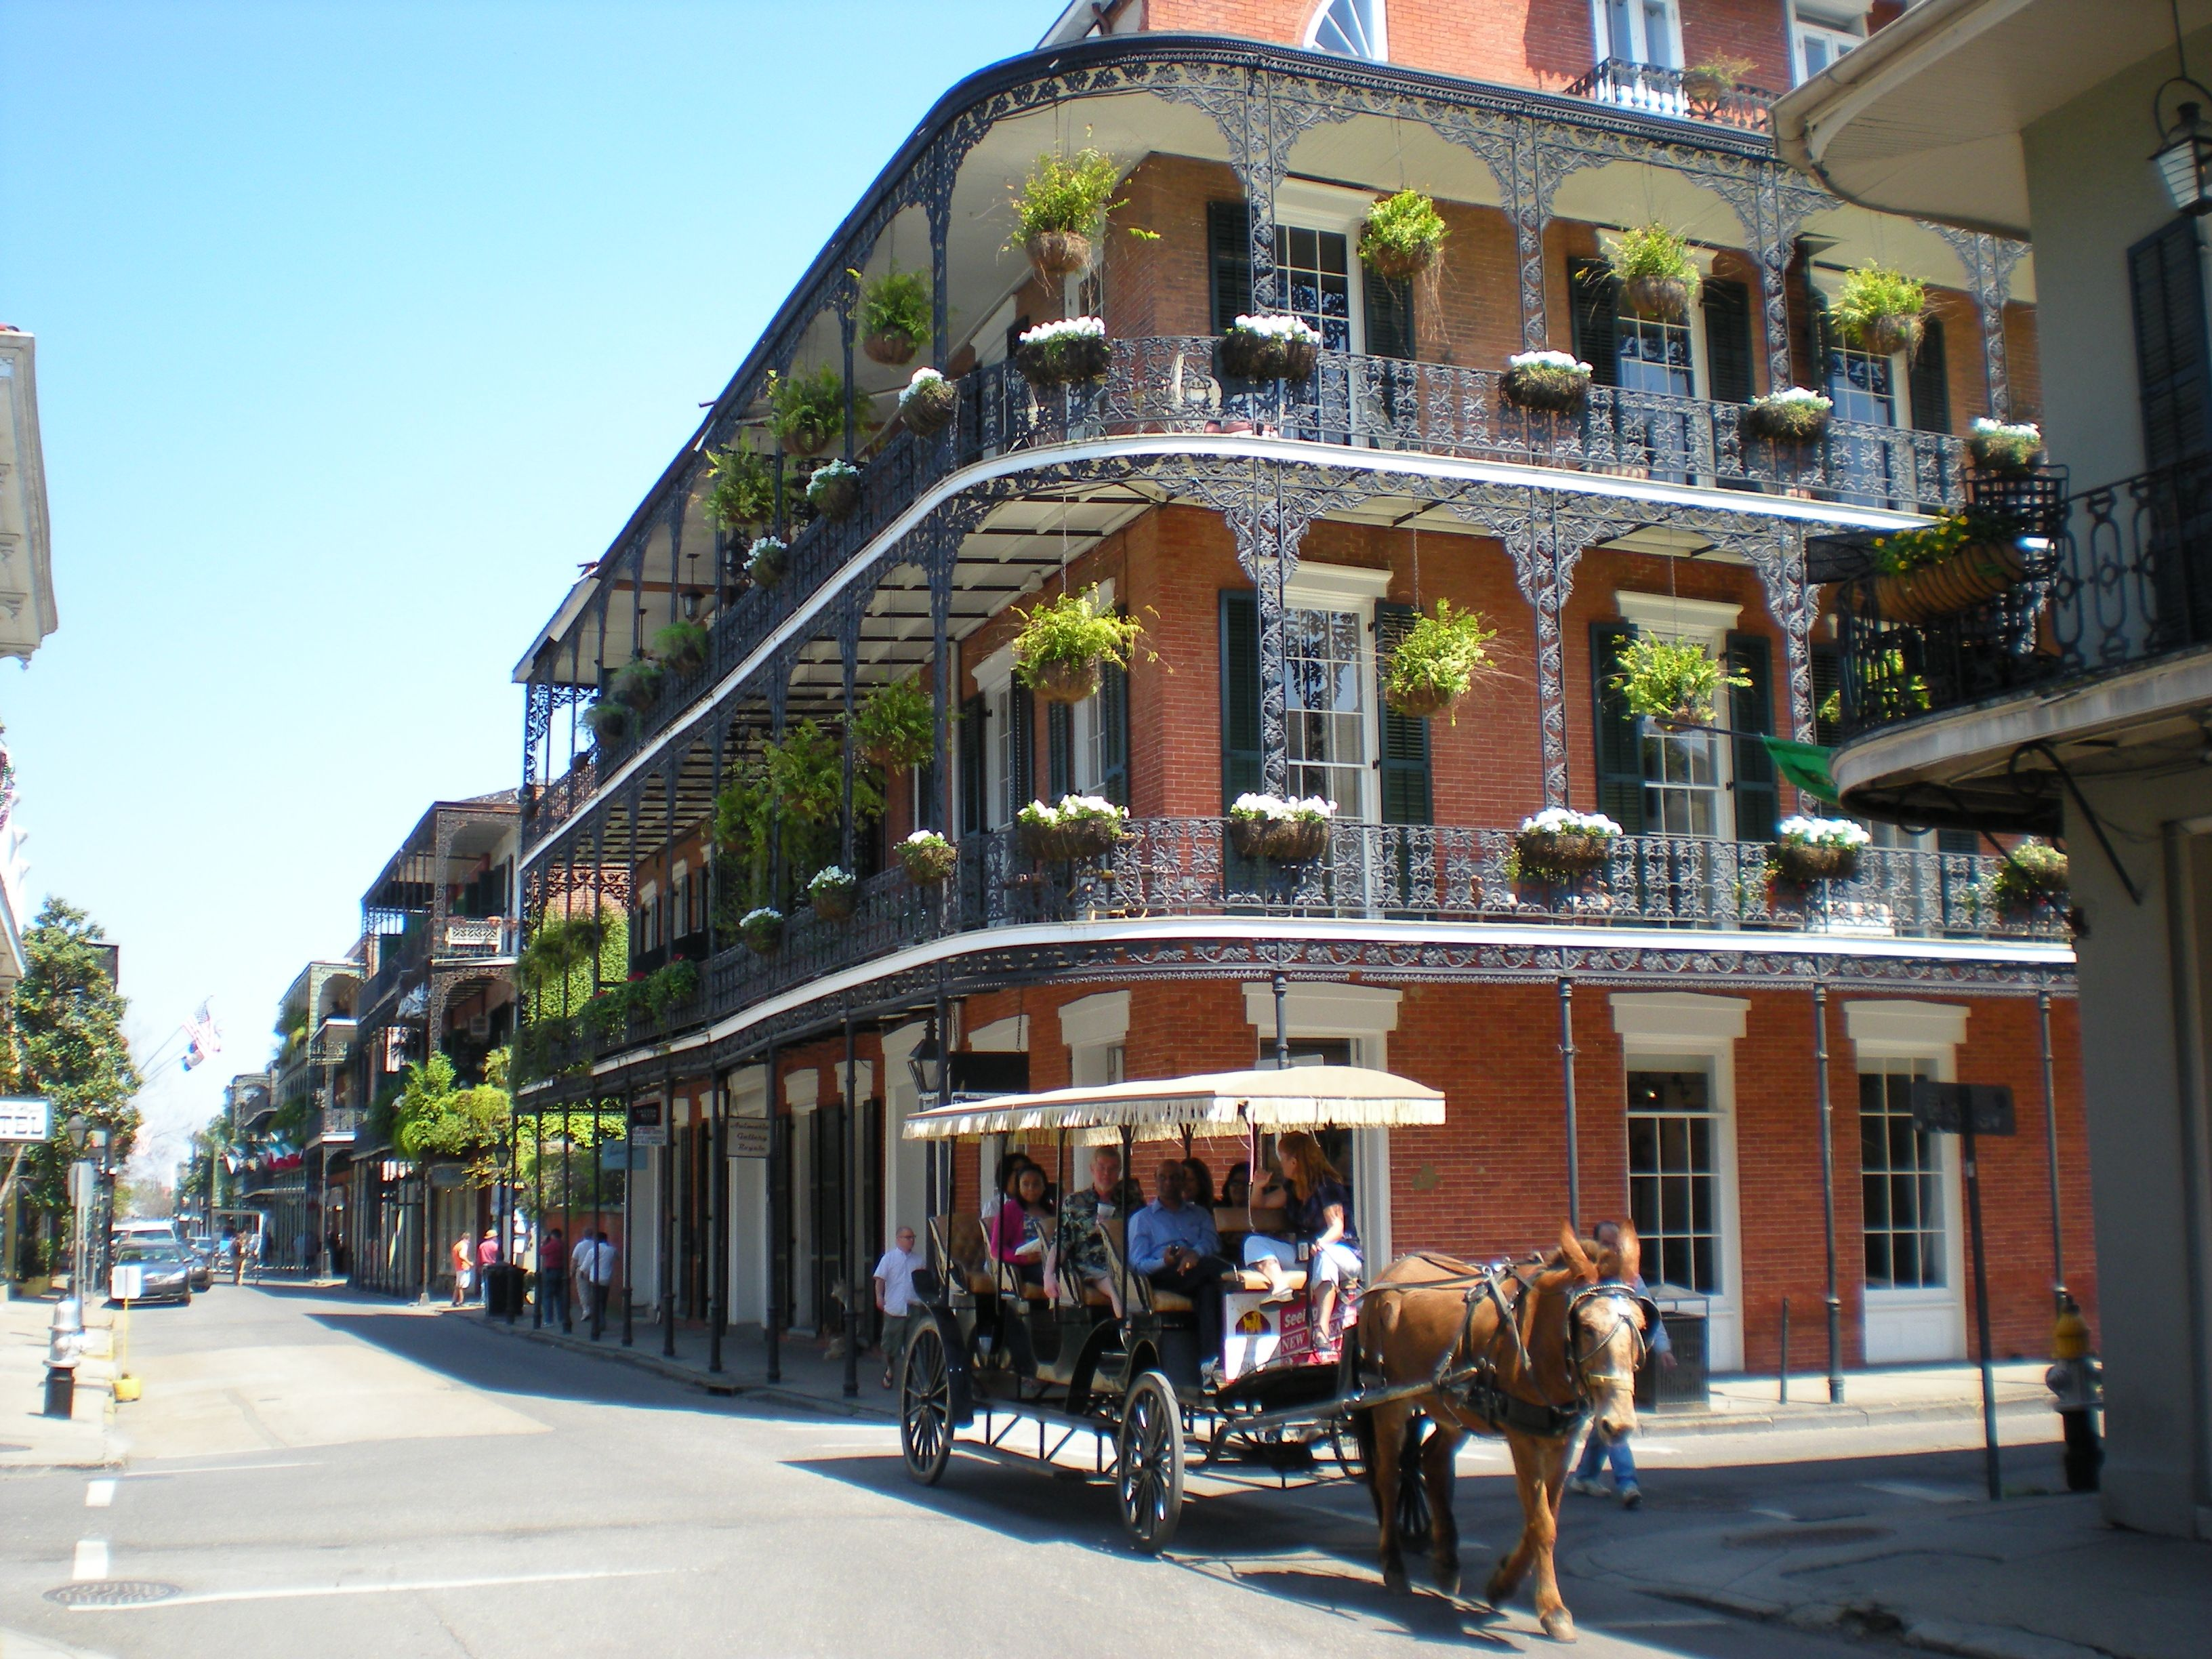 New Orleans: More Than Just Mardi Gras #favoriteplaces